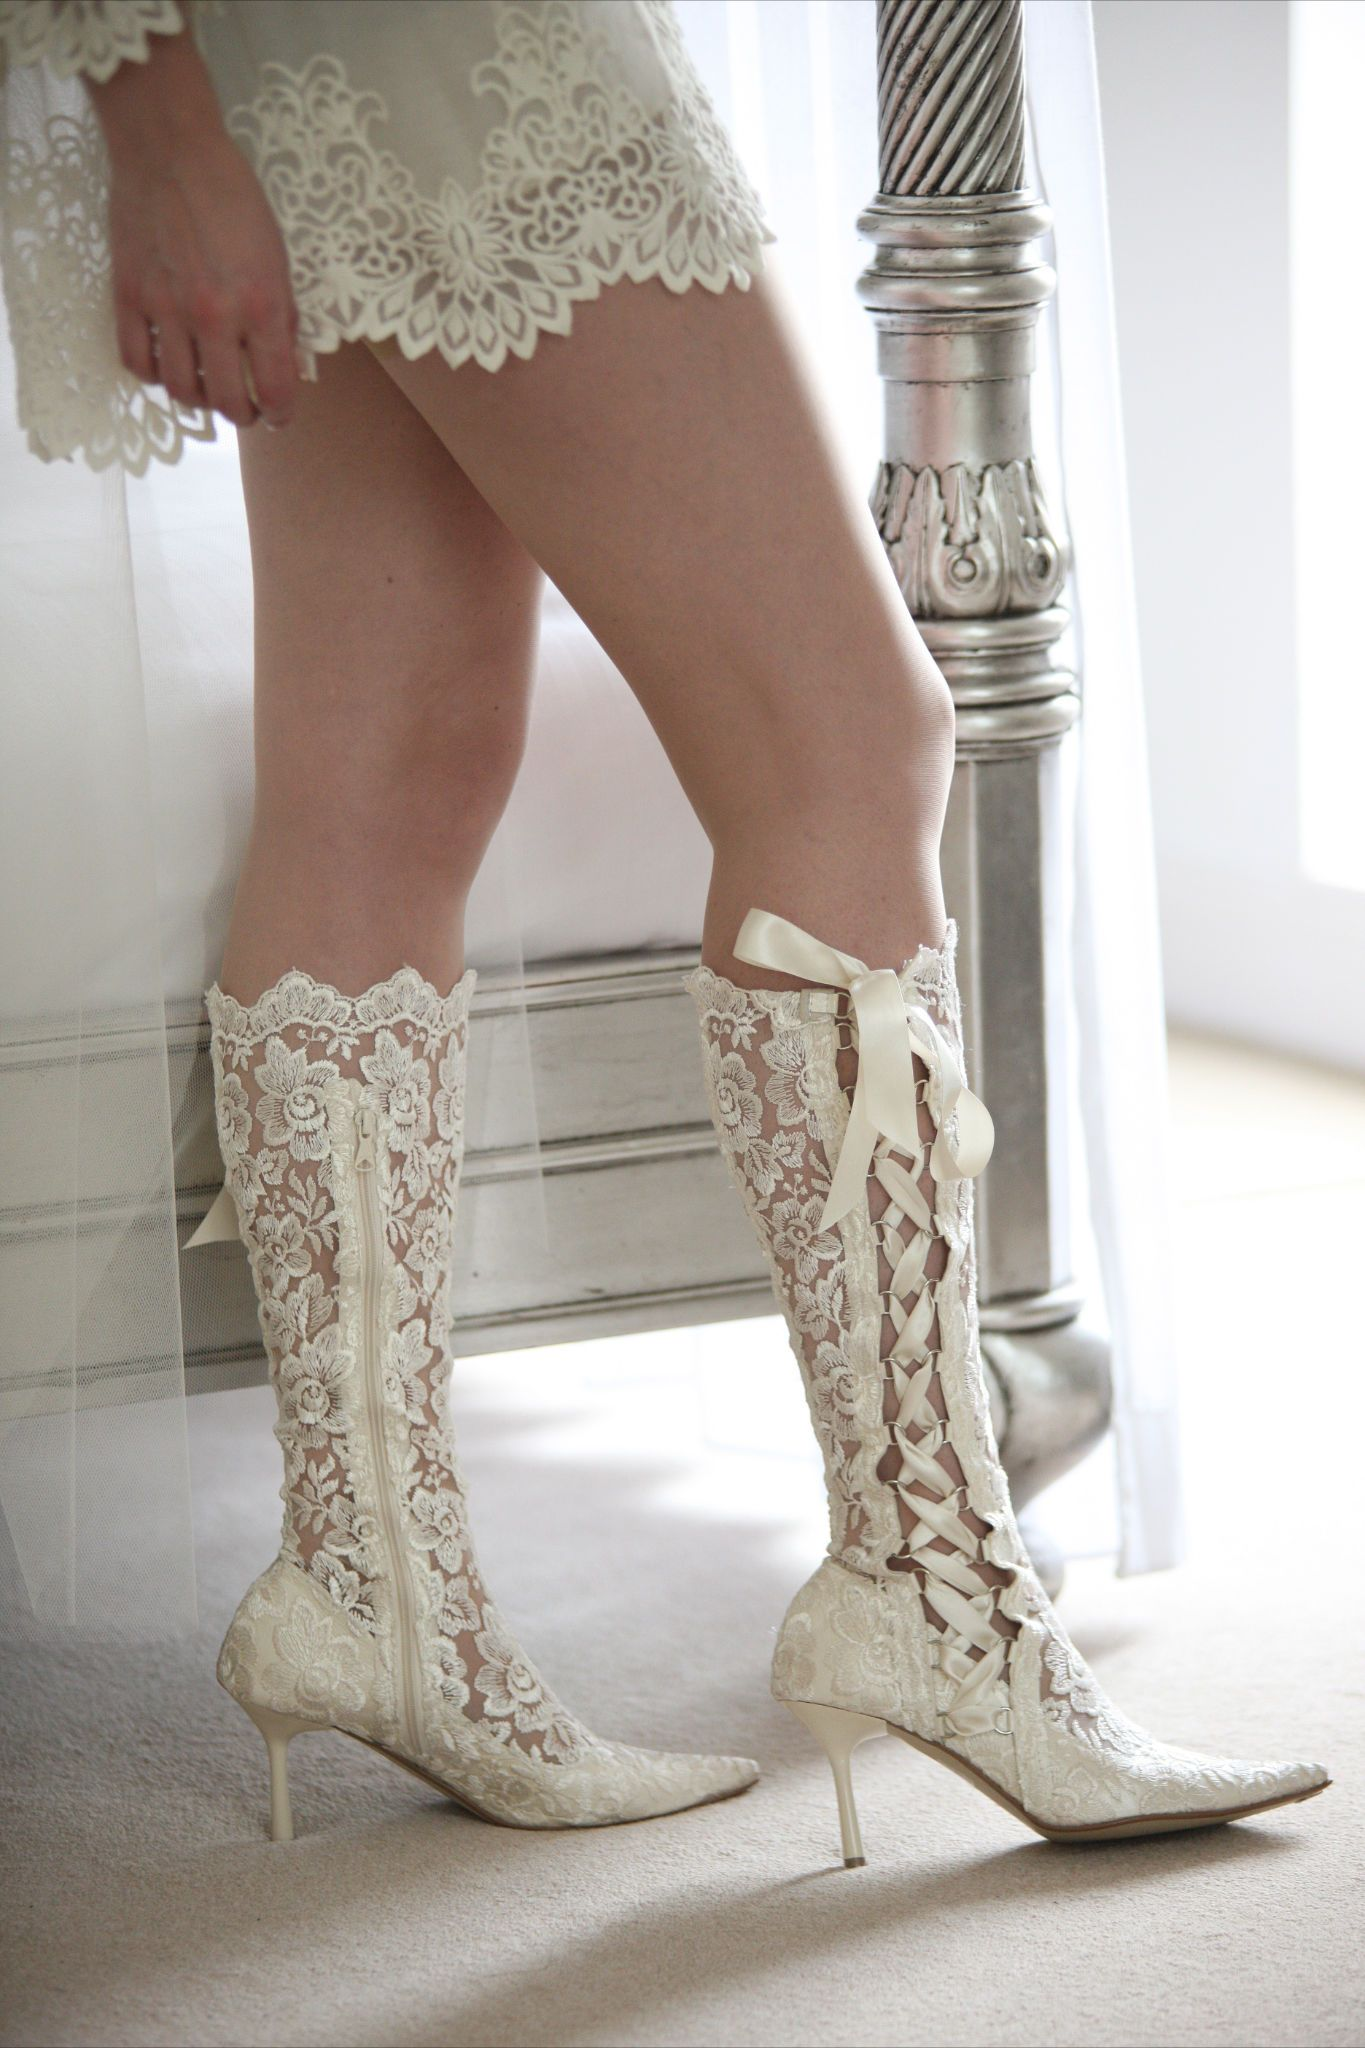 Explore Wedding Cowboy Boots Lace Shoeore